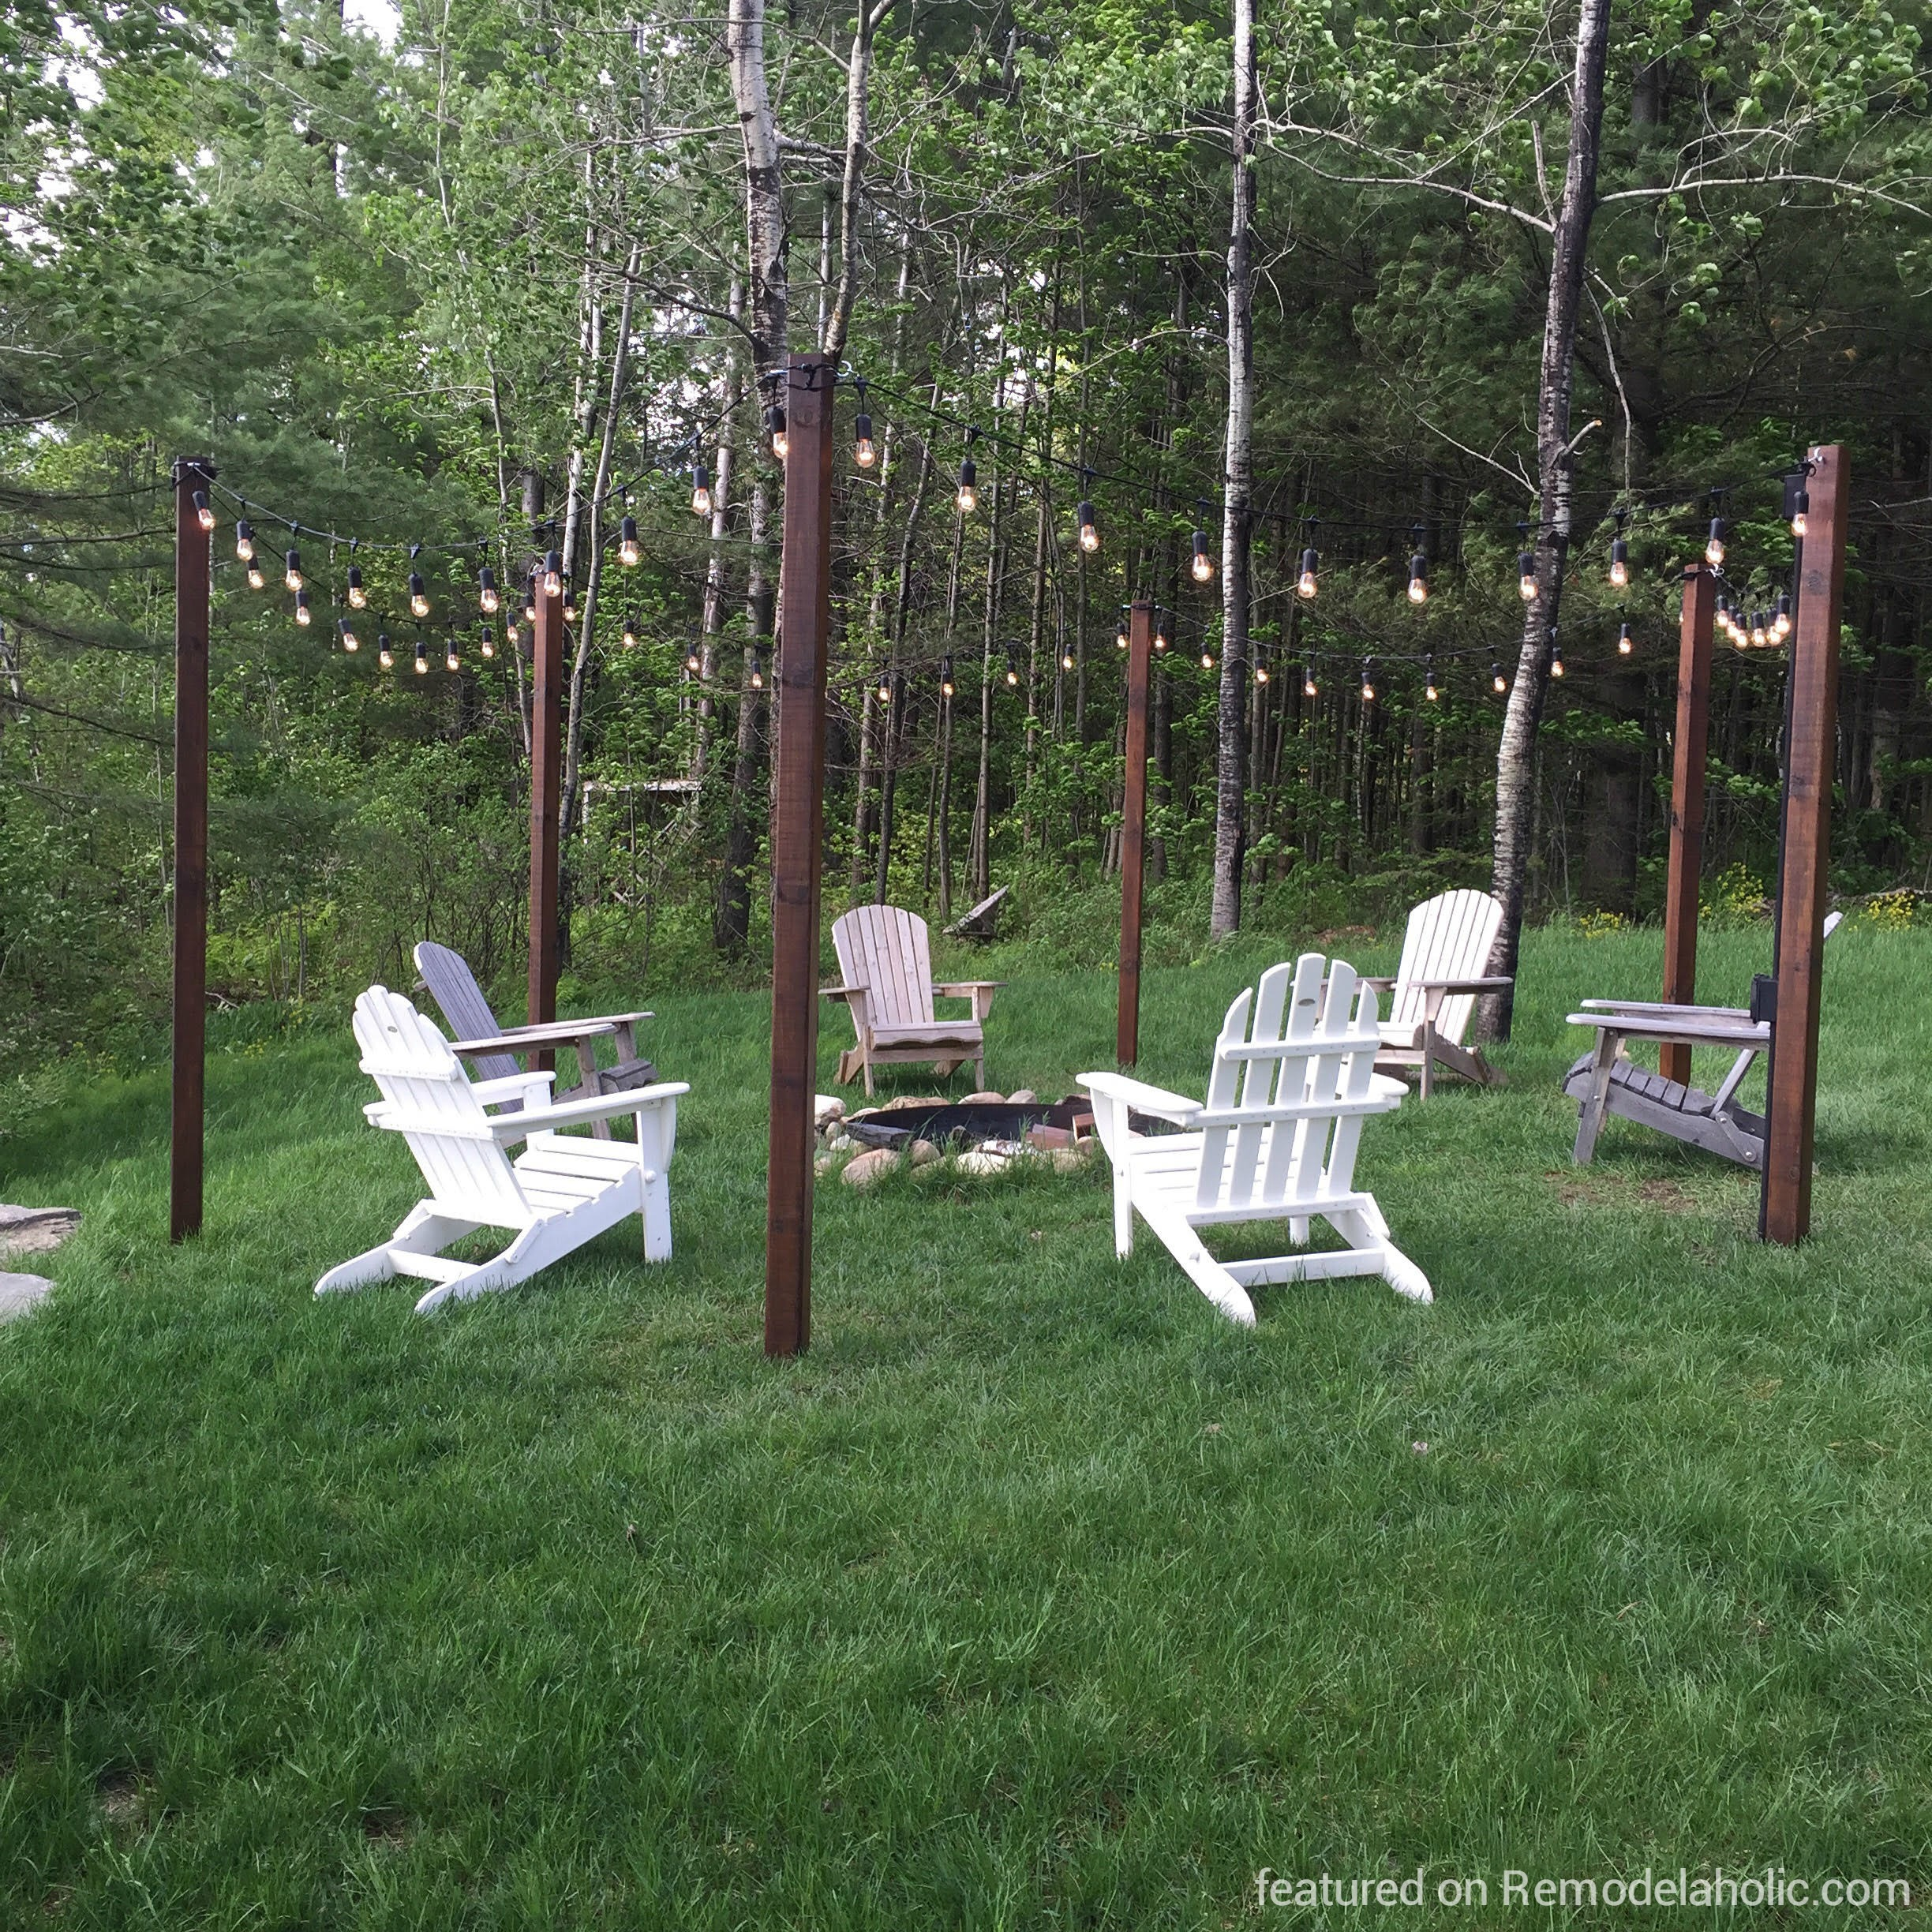 Remodelaholic For Chairs Around Fire Pit, Image Source: Remodelaholic.com